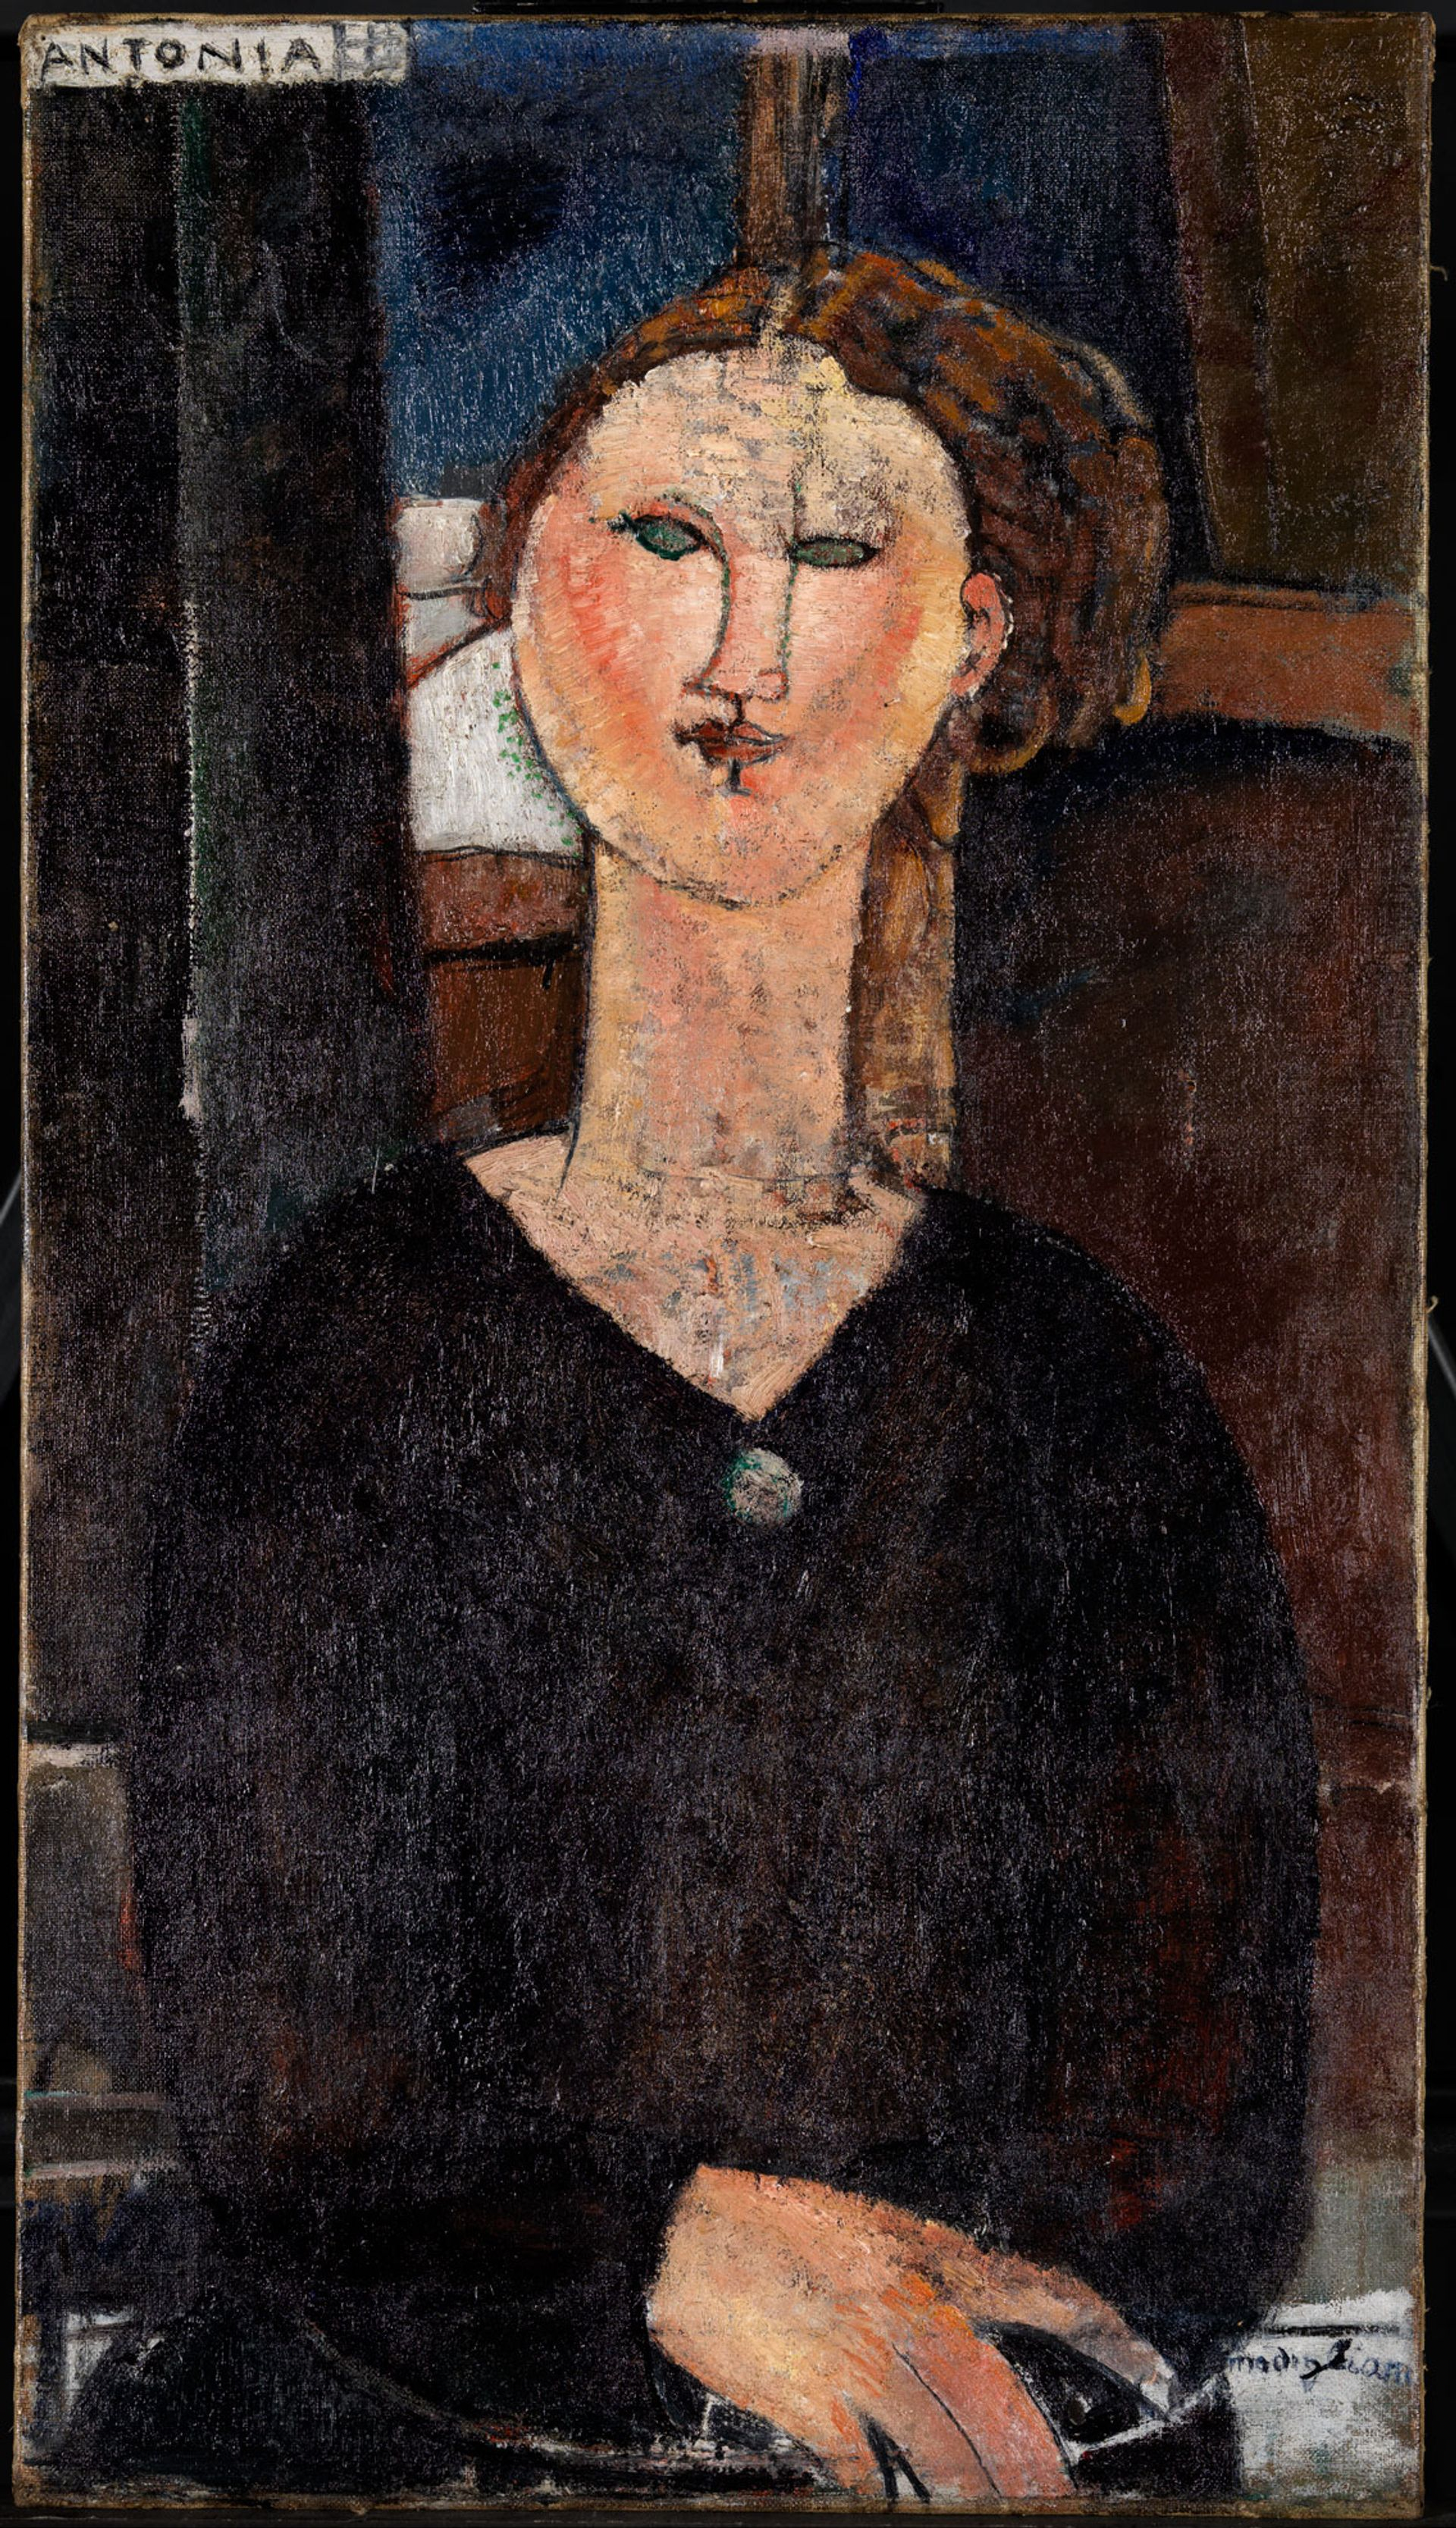 France's national museums laboratory has conducted a forensic study of every Modigliani painting and sculpture in the country's public collections. Antonia (around 1915) has emerged as the most complex of all © Centre de Recherche et de Restauration des Musées de France/Gérald Parisse